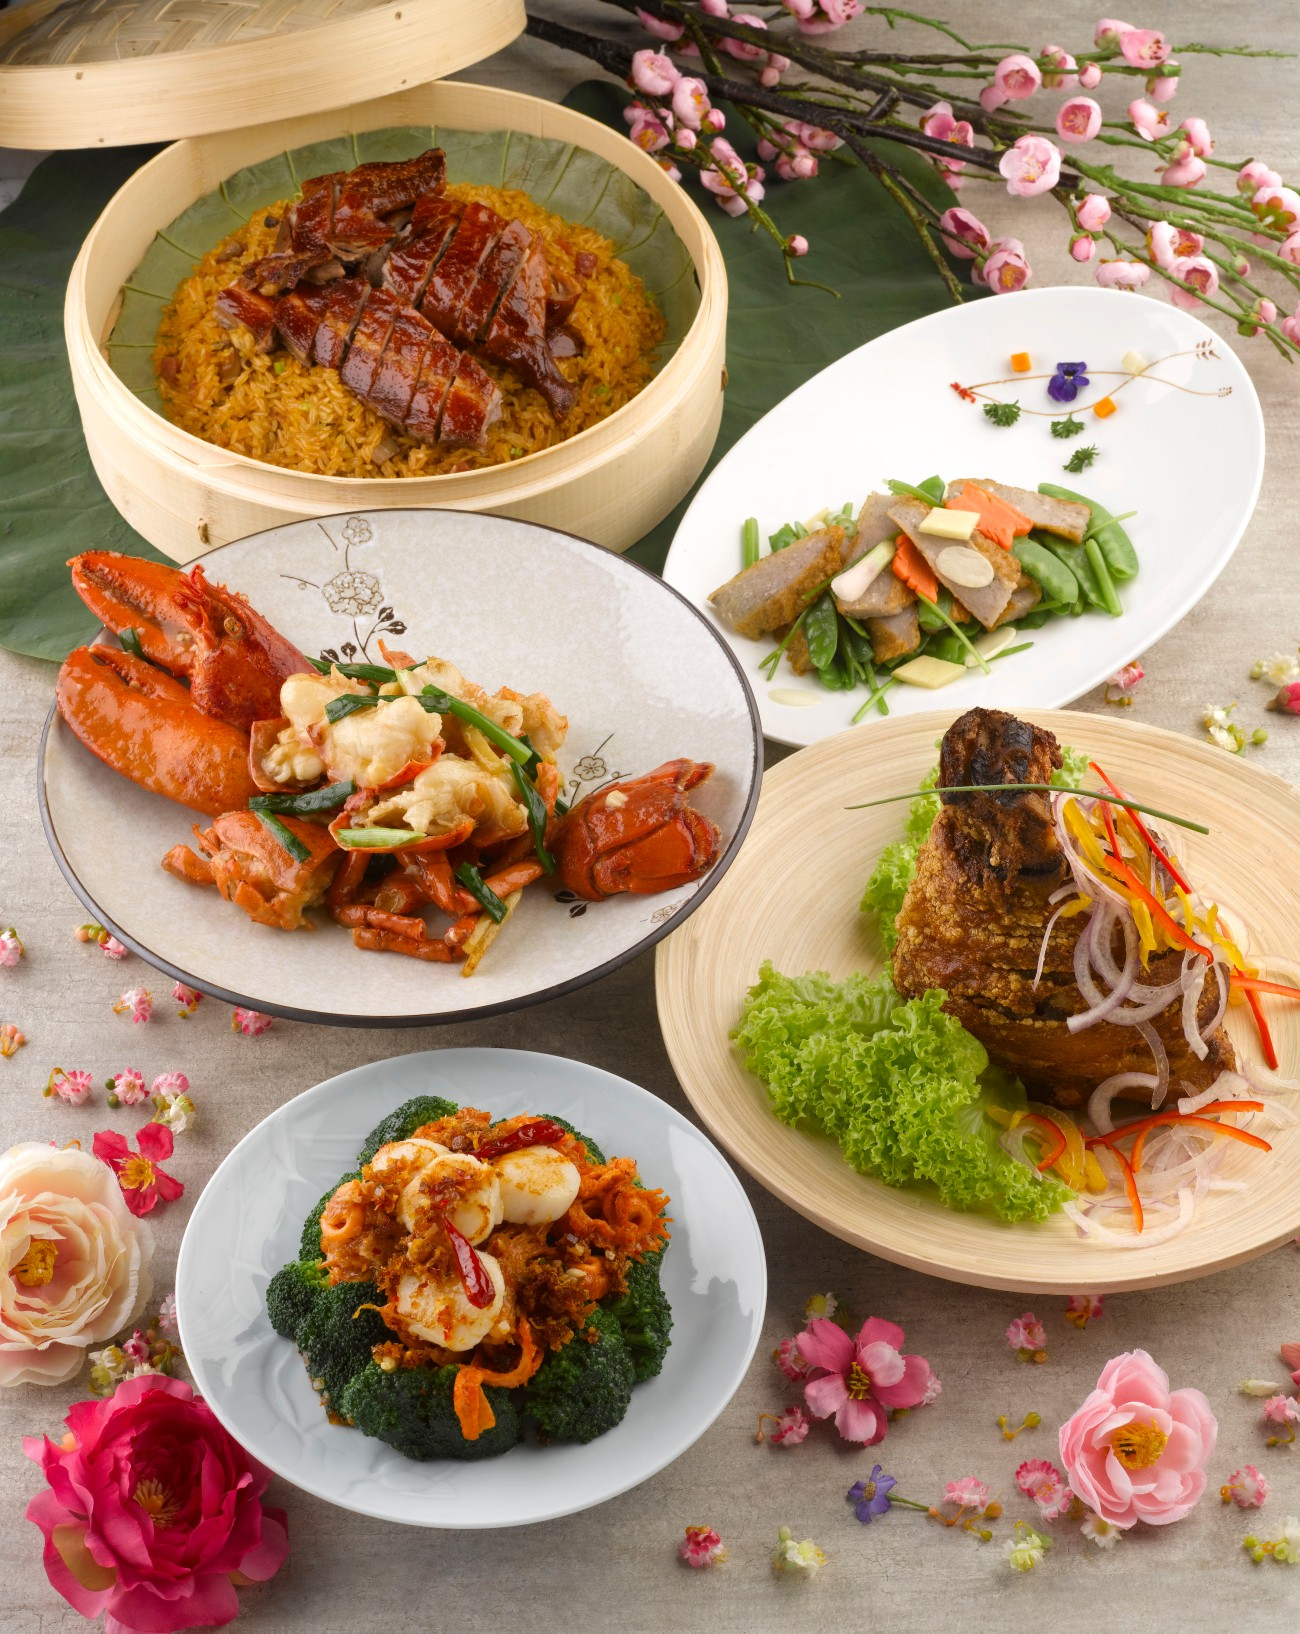 Crystal Jade CNY 2016 - Crystal Jade Kitchen specialty dishes